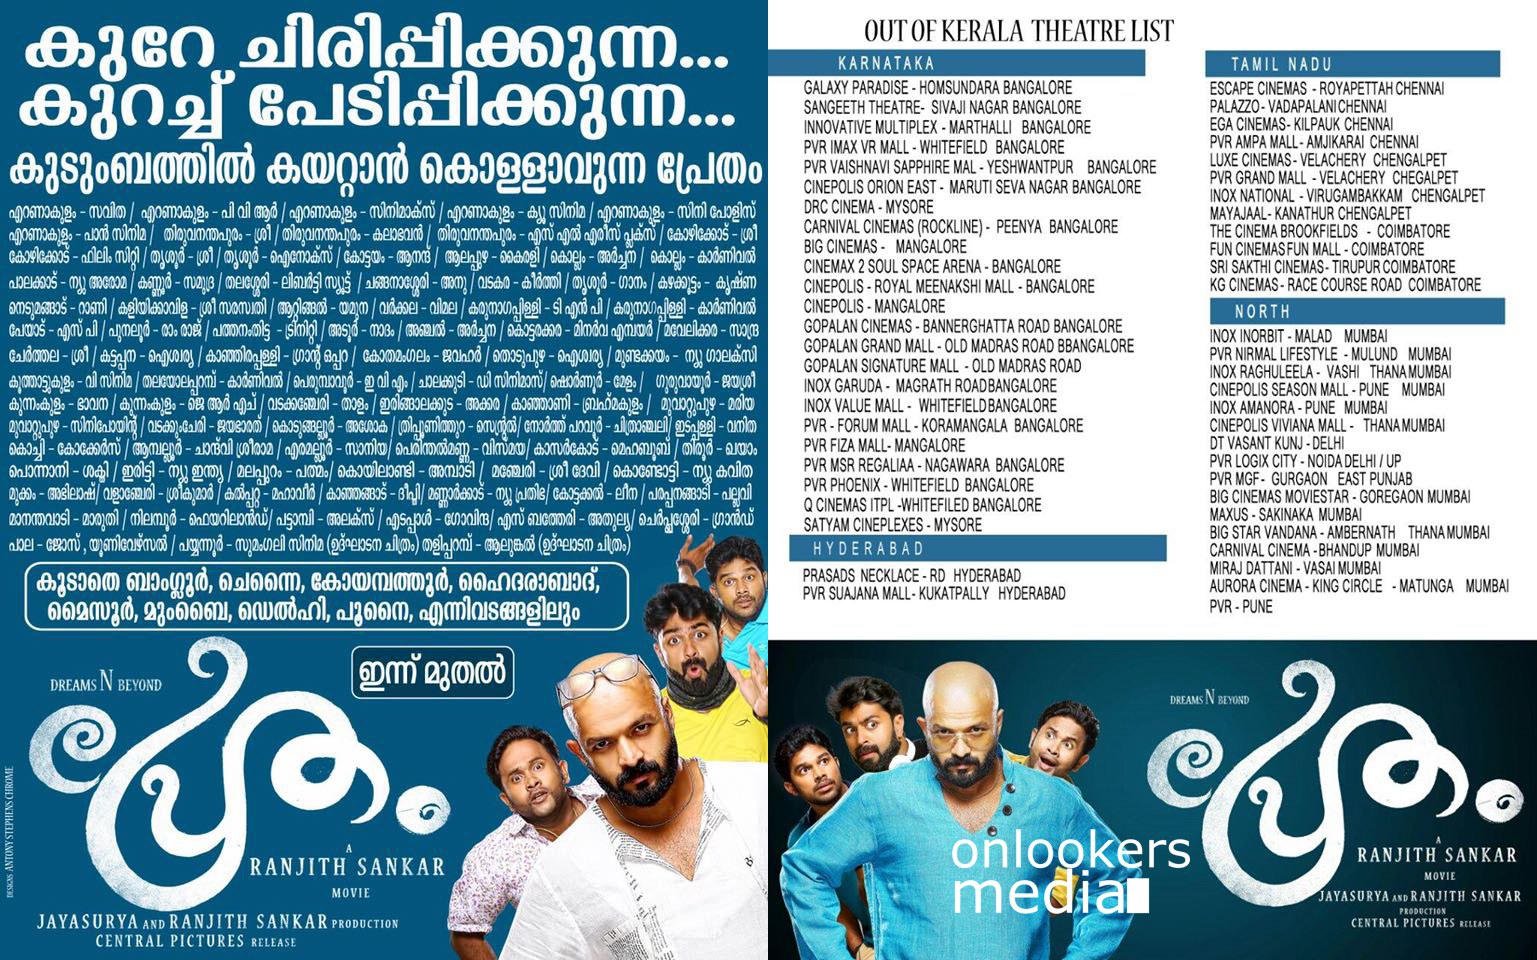 pretham theatre list, pretham online booking, pratham malayalam movie out side kerala theater list;